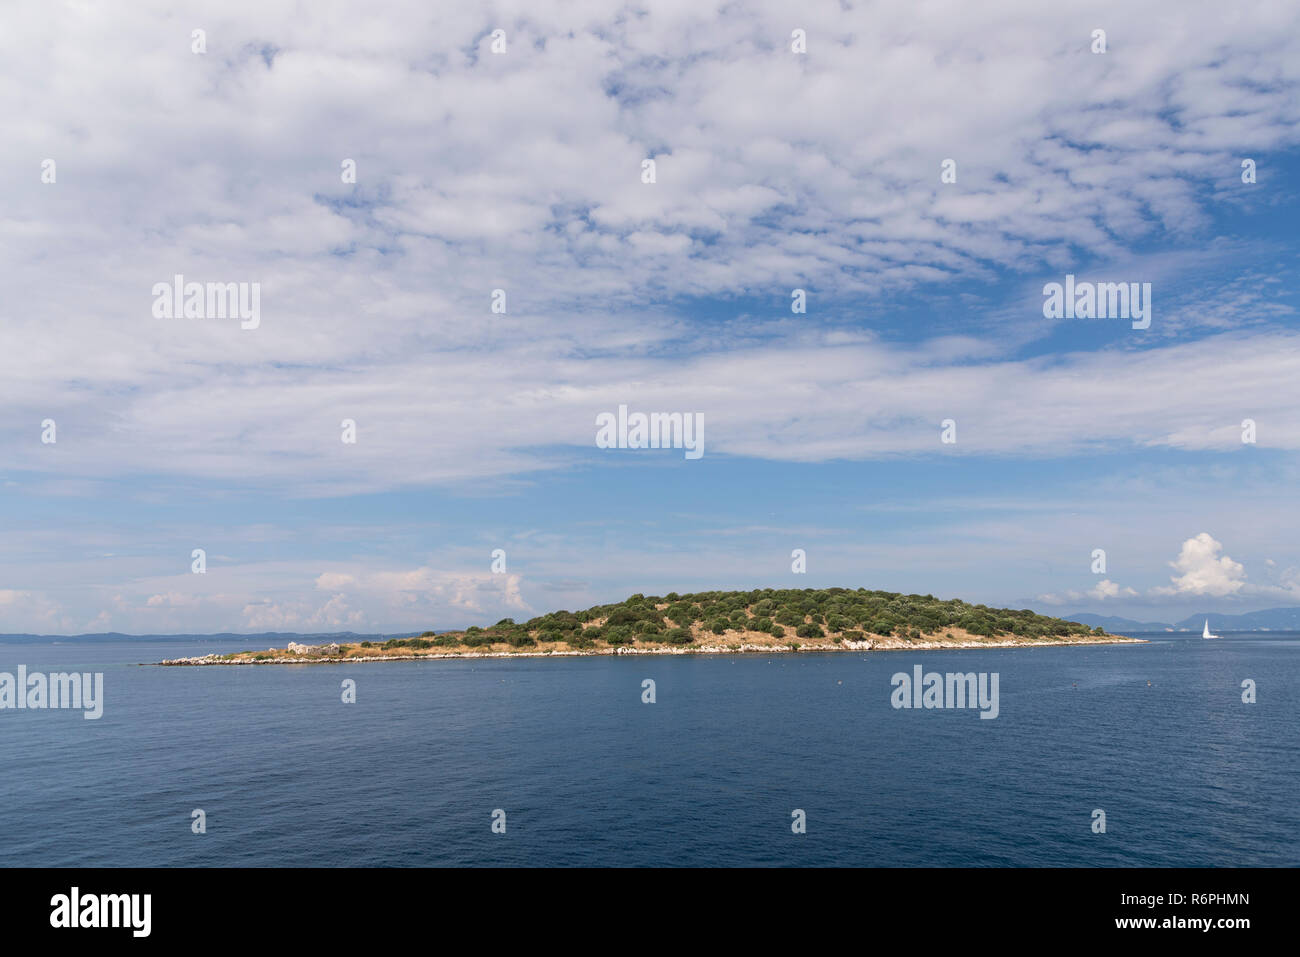 Island and sailboat in the ionian sea with a cloudy sky. - Stock Image